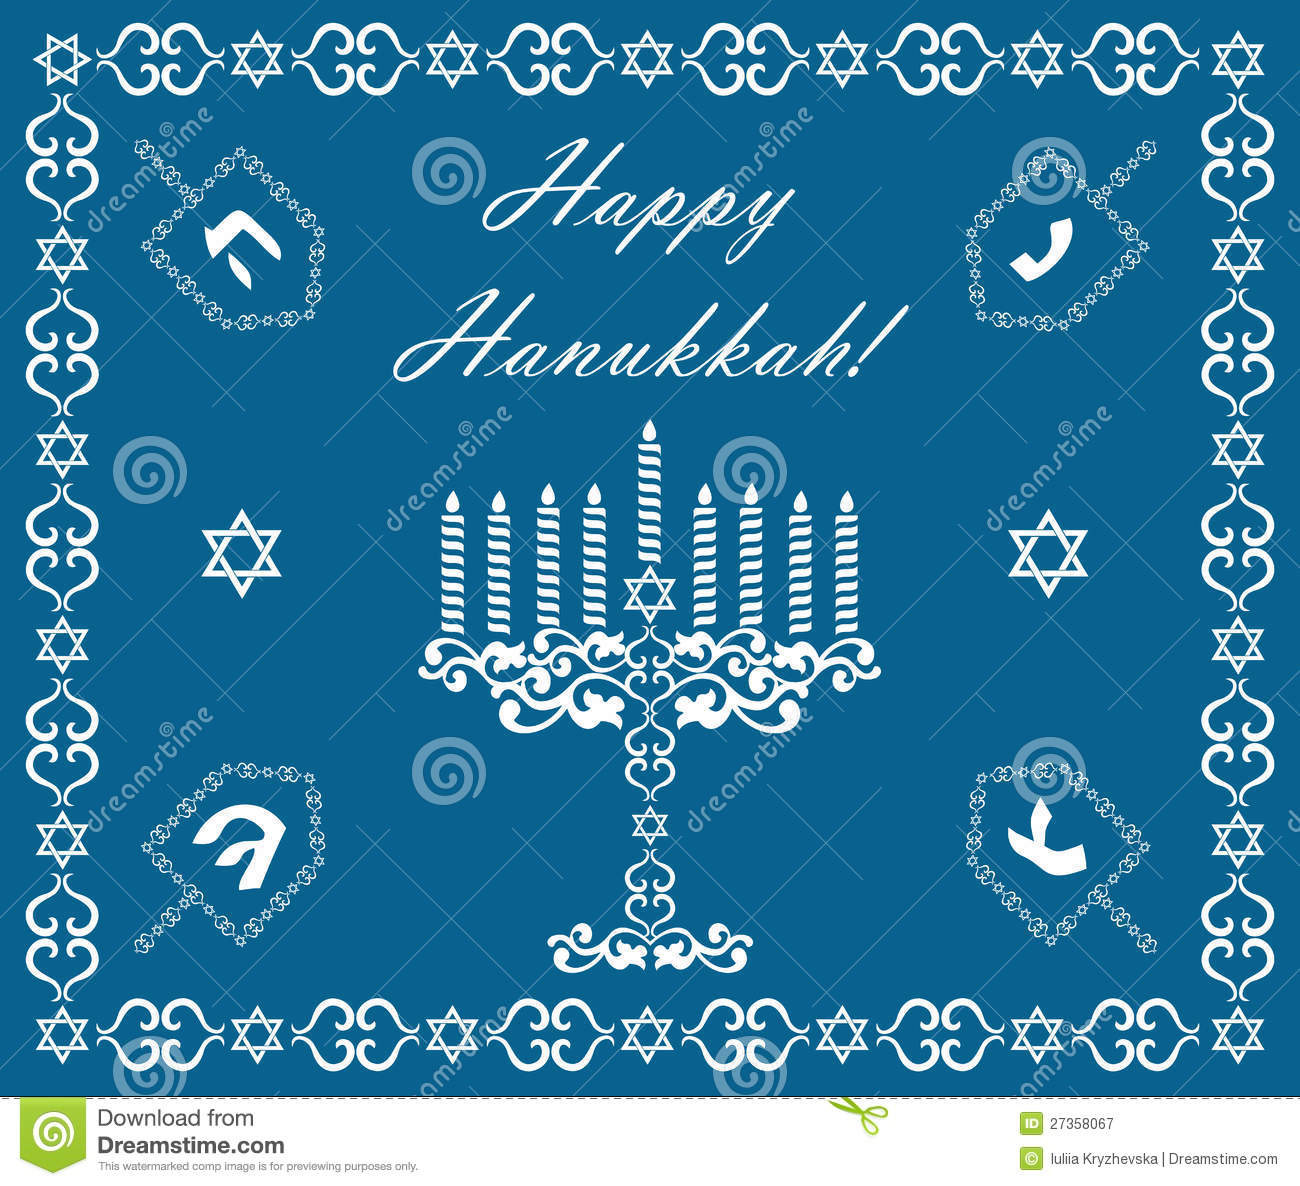 Chanukah holiday background with dreidels